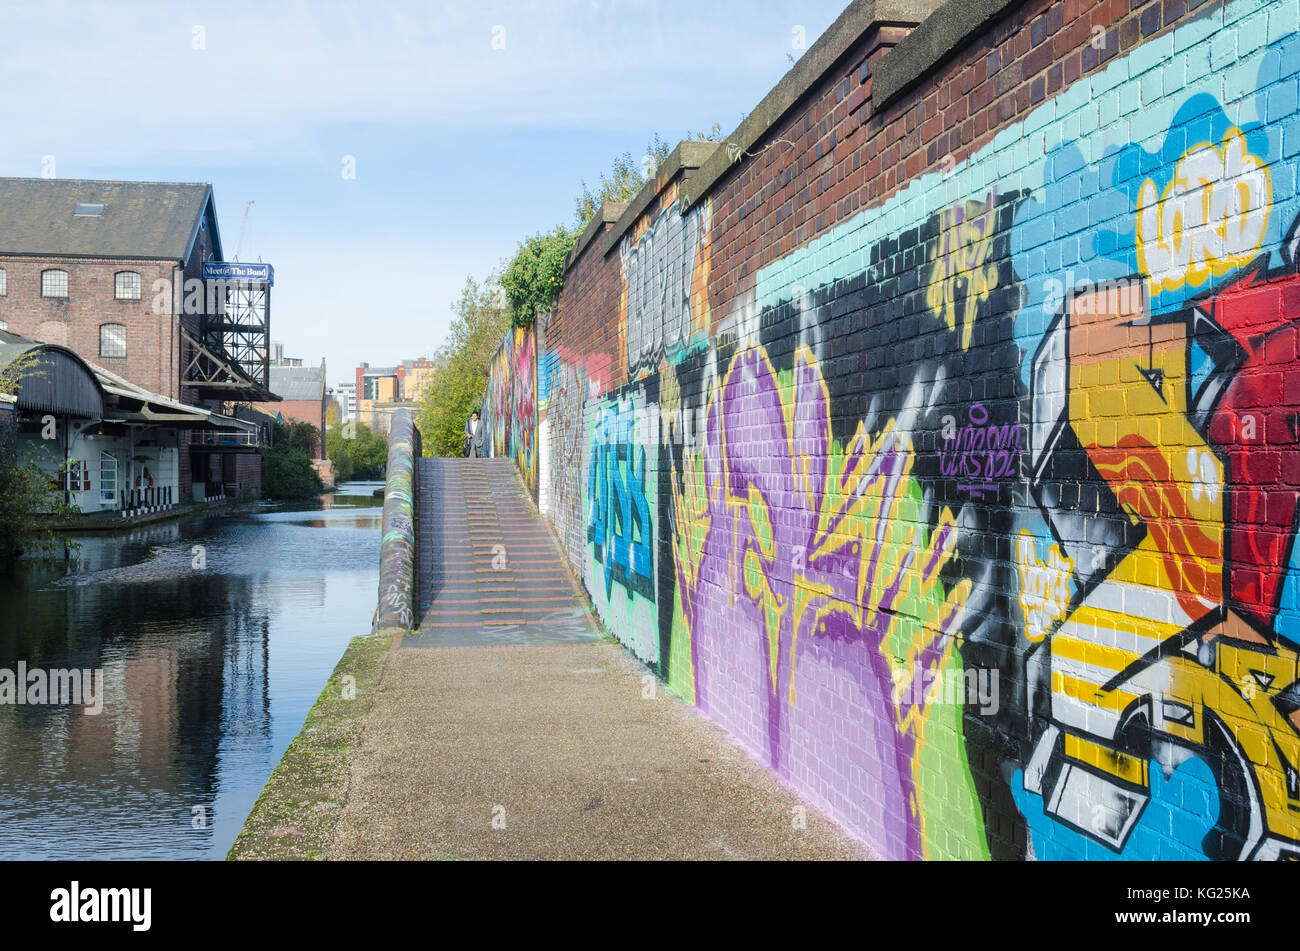 Colourful graffiti painted on brick walls beside the Digbeth Branch Canal towpath in Digbeth, Birmingham, UK - Stock Image